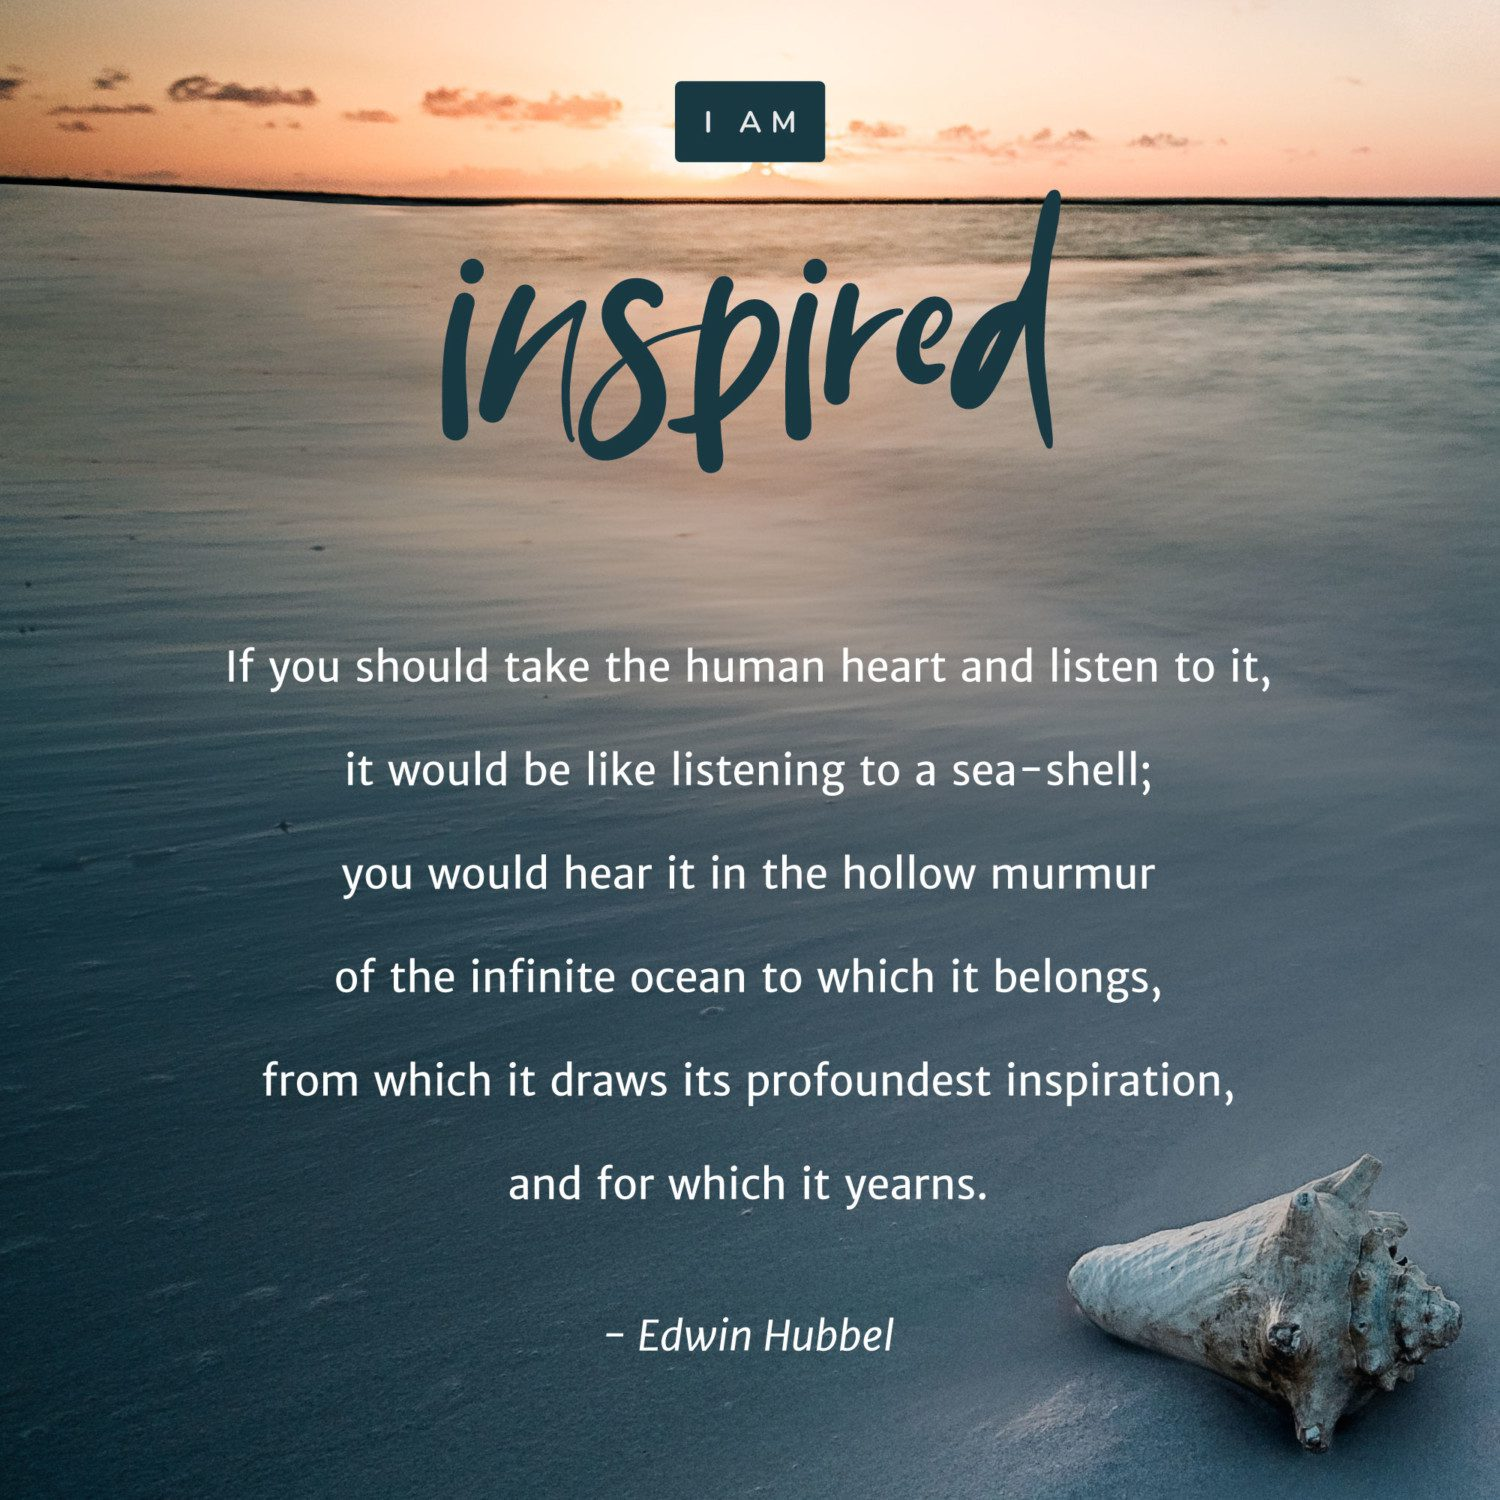 """If you should take the human heart and listen to it, it would be like listening to a sea-shell; you would hear it in the hollow murmur of the infinite ocean to which it belongs, from which it draws its profoundest inspiration, and for which it yearns."" – Edwin Hubbel"